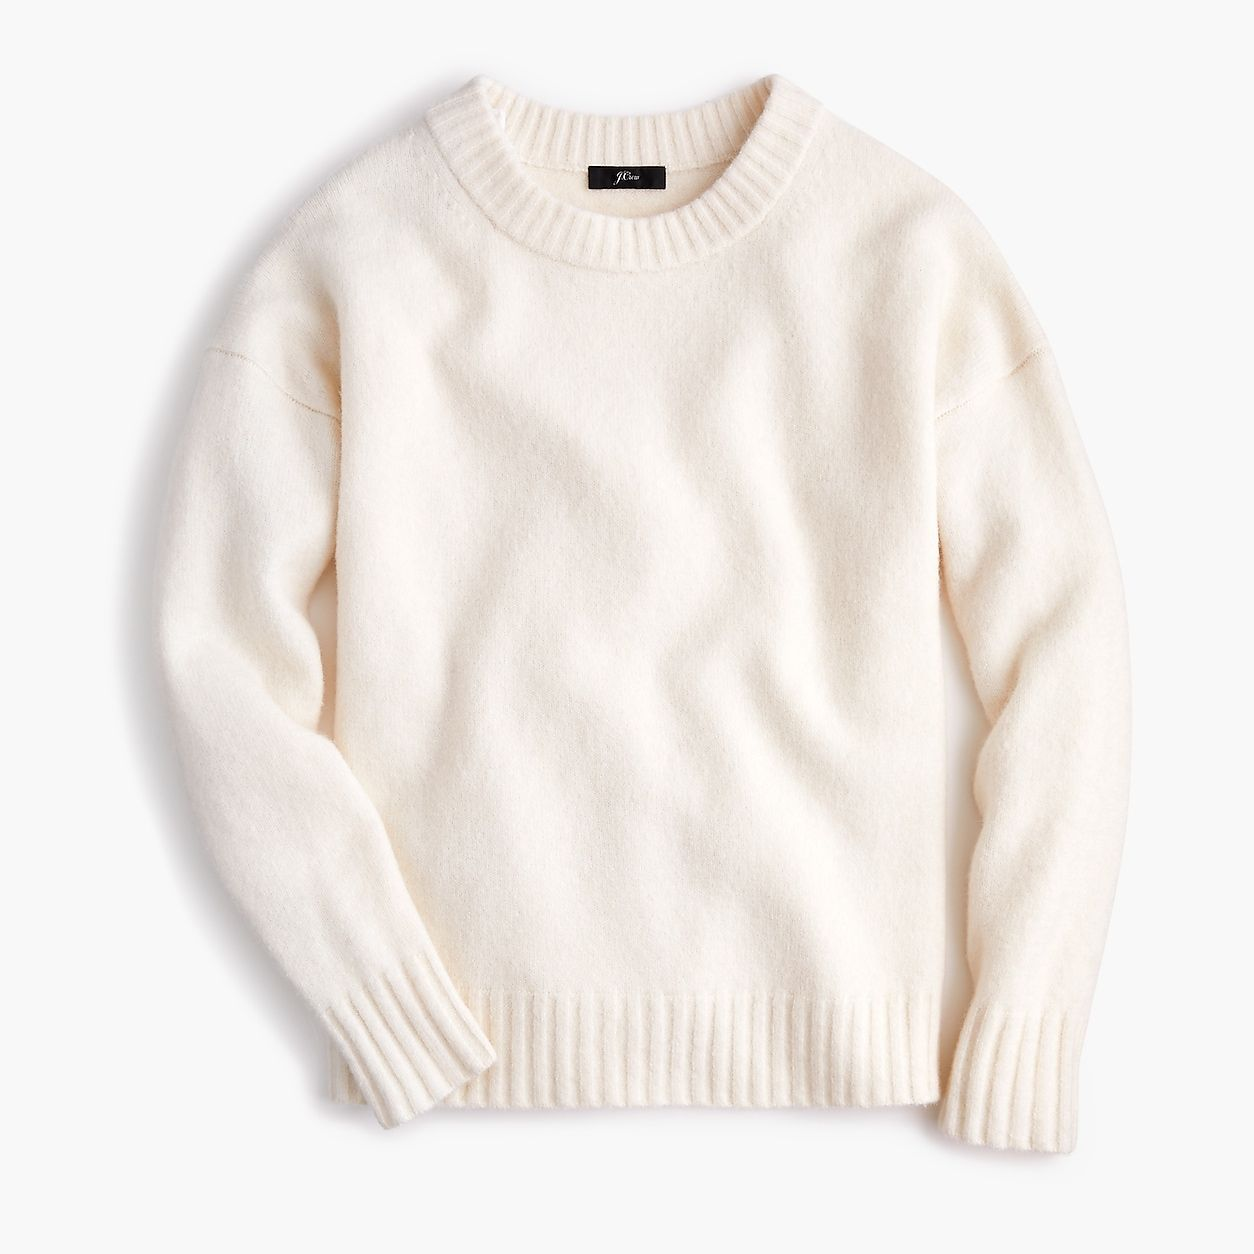 bd8bb44ed33 Oversized Crewneck Sweater In Supersoft Yarn